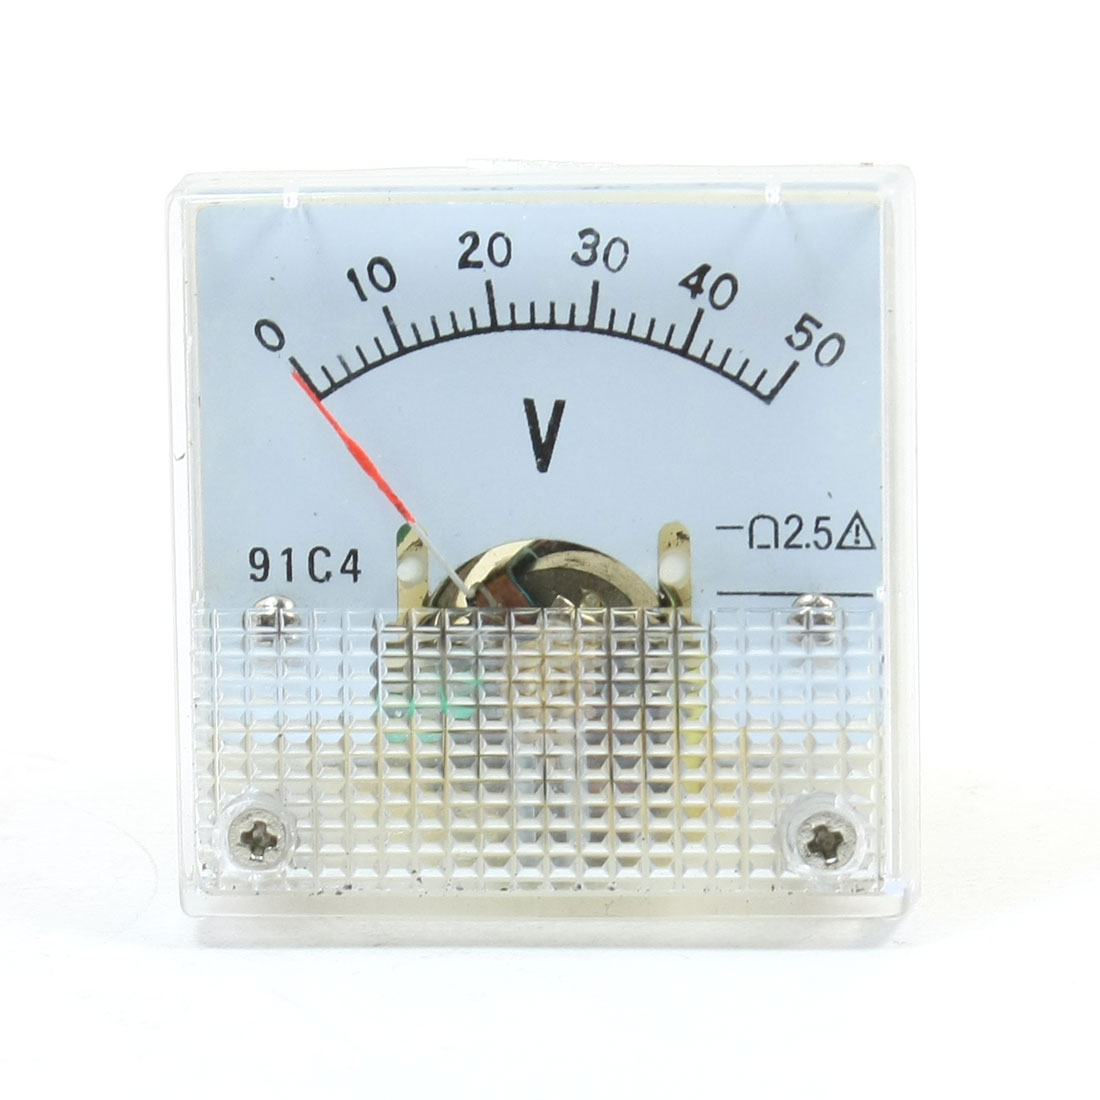 Square Shaped Voltage Panel Meter Voltmeter 91C4 DC 0-50V